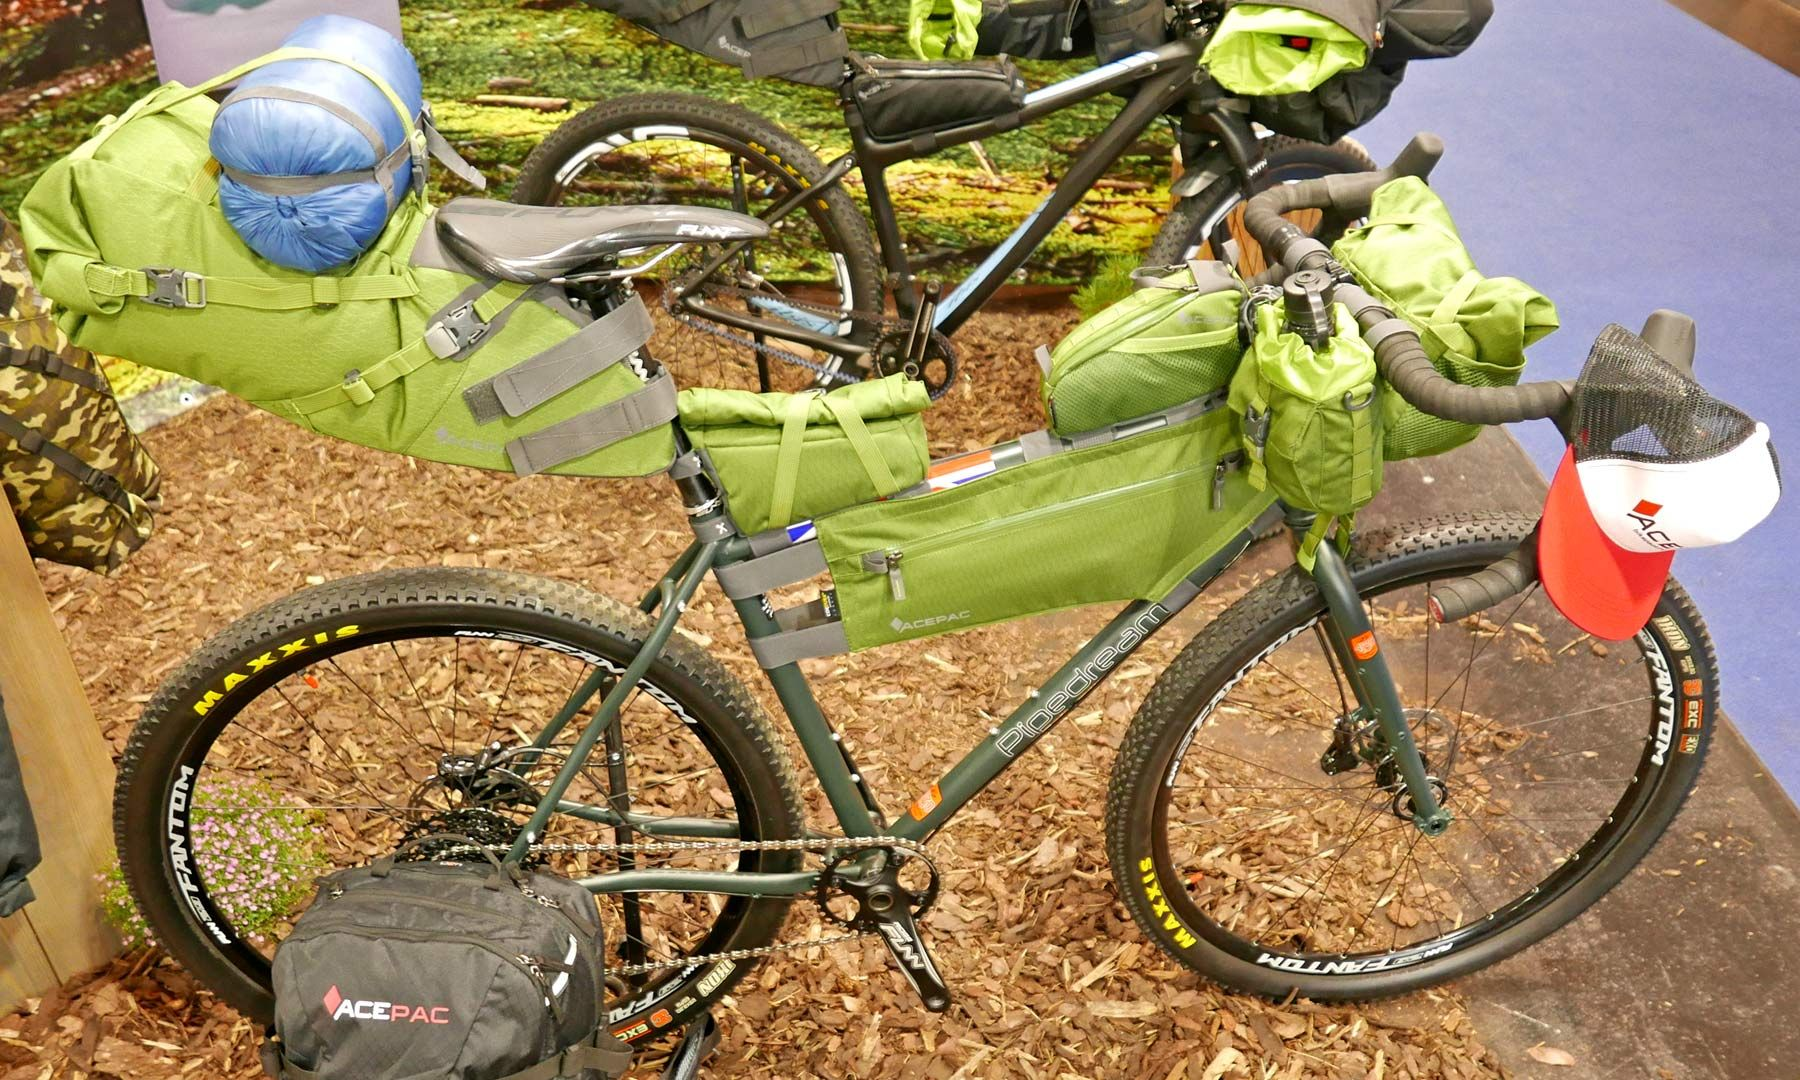 Eb18 Acepac Packs Your Bikepacking Adventure Gear With Smart